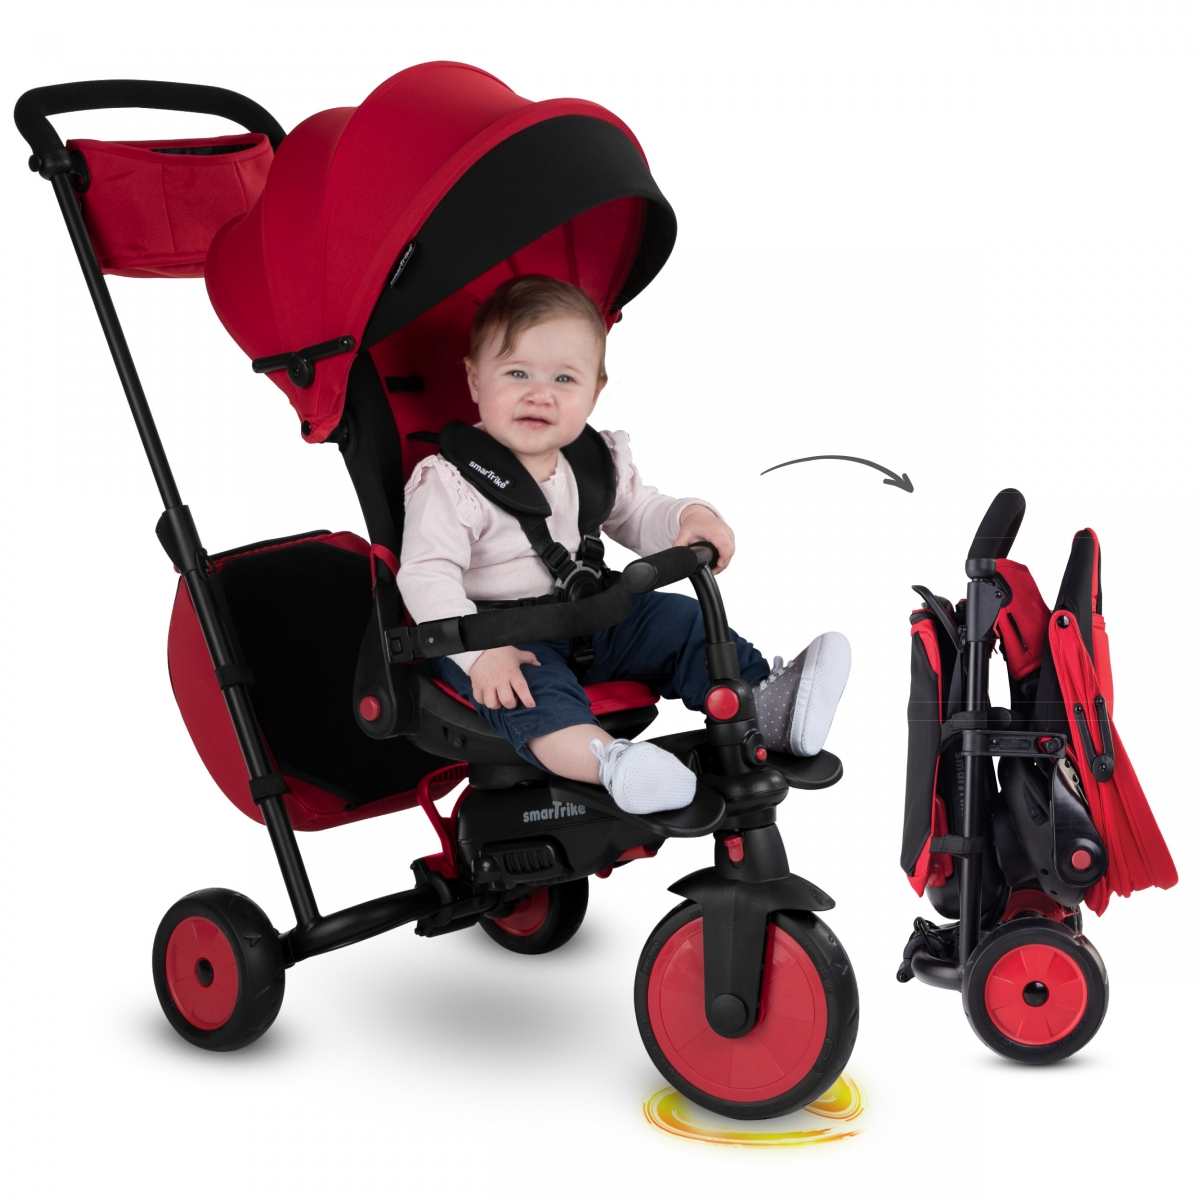 SmarTrike 8in1 Folding Baby Tricycle STR7 Red (NEW)